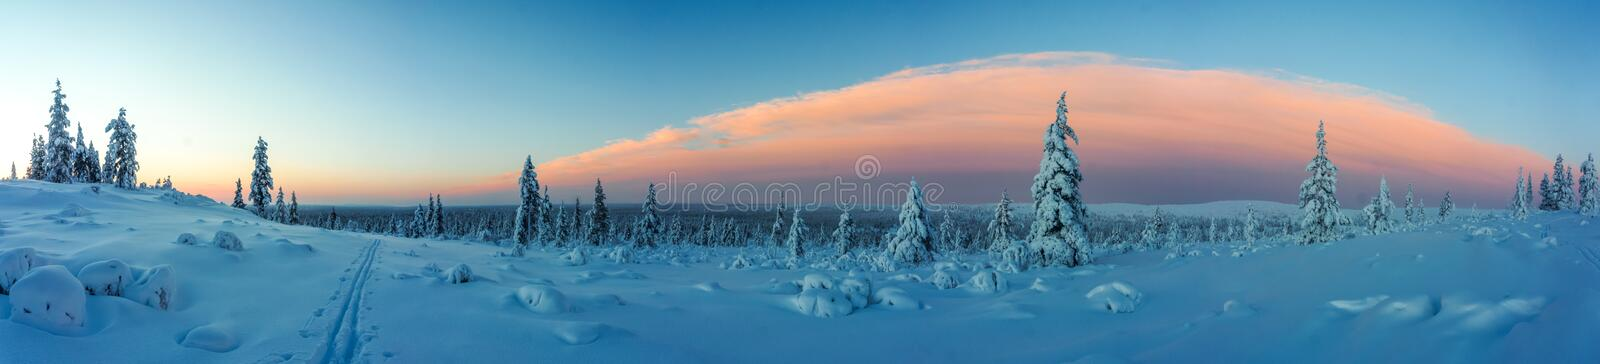 Winter forest in northern Finland royalty free stock images